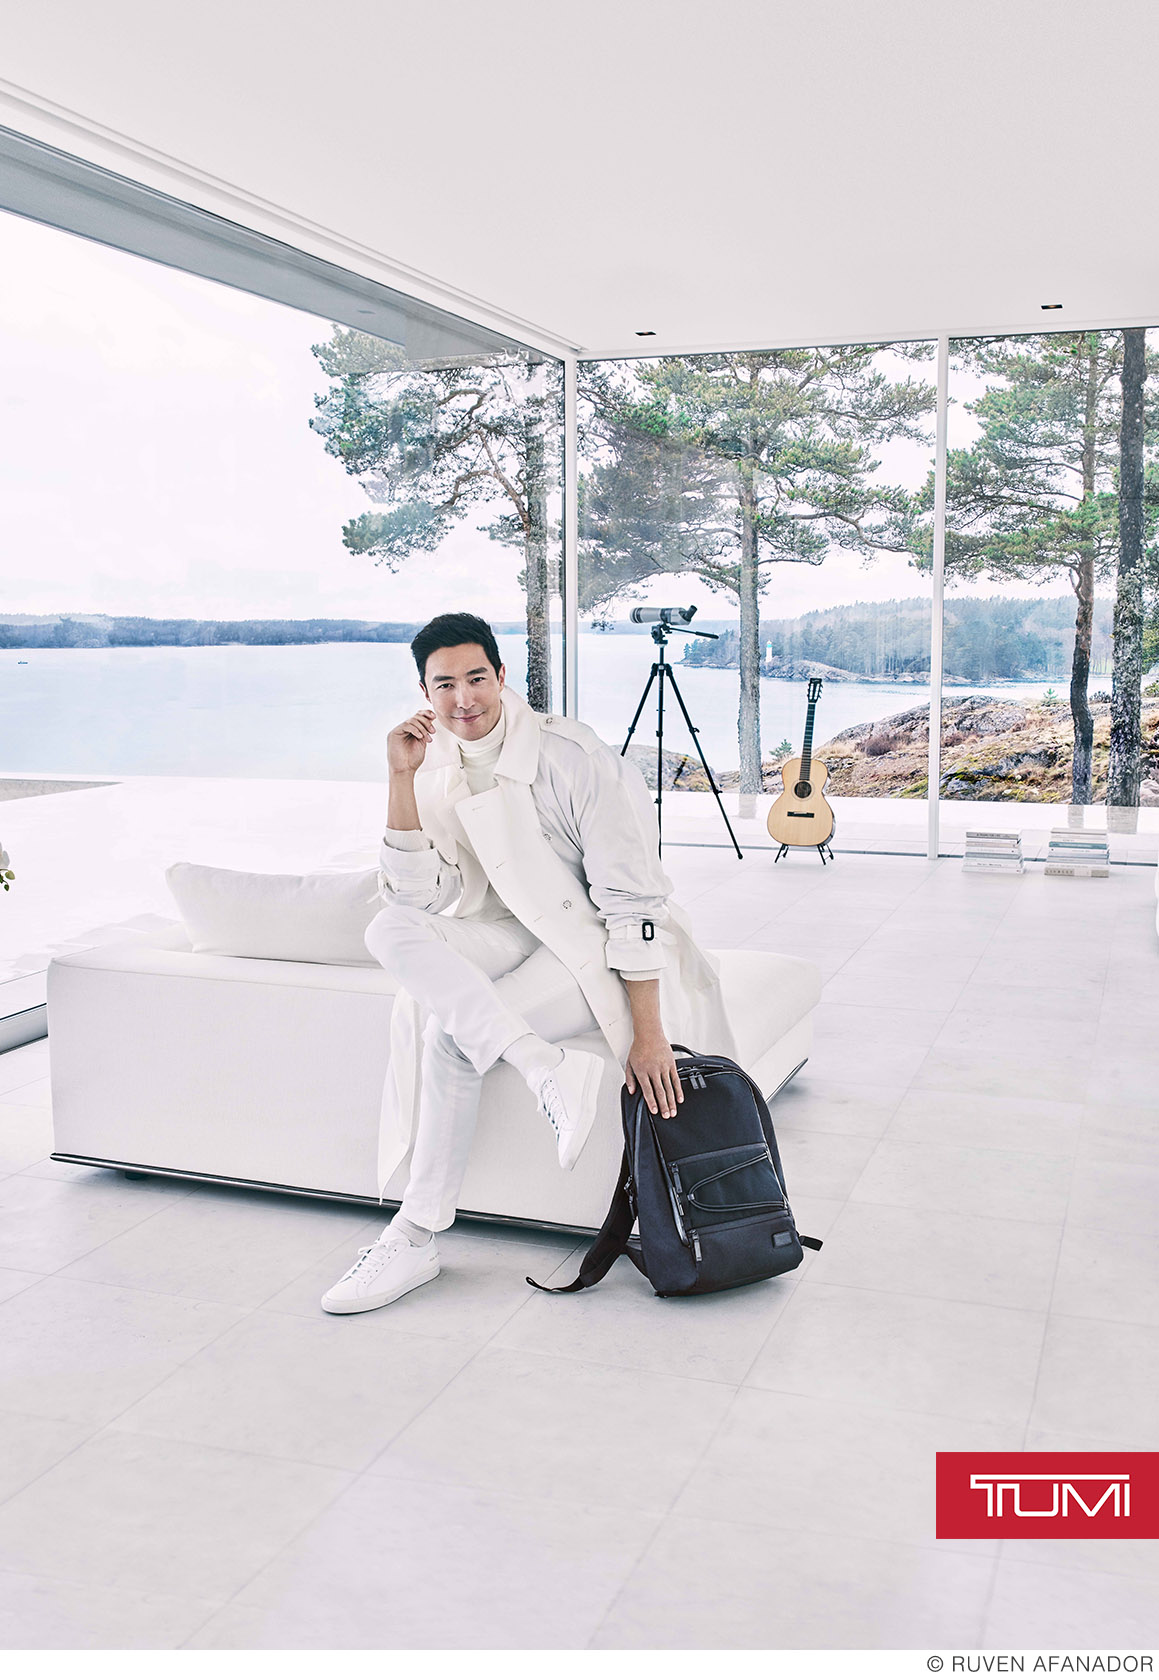 Advertising_TUMI_SCANDINAVIA_DANIEL_HENNEY_2